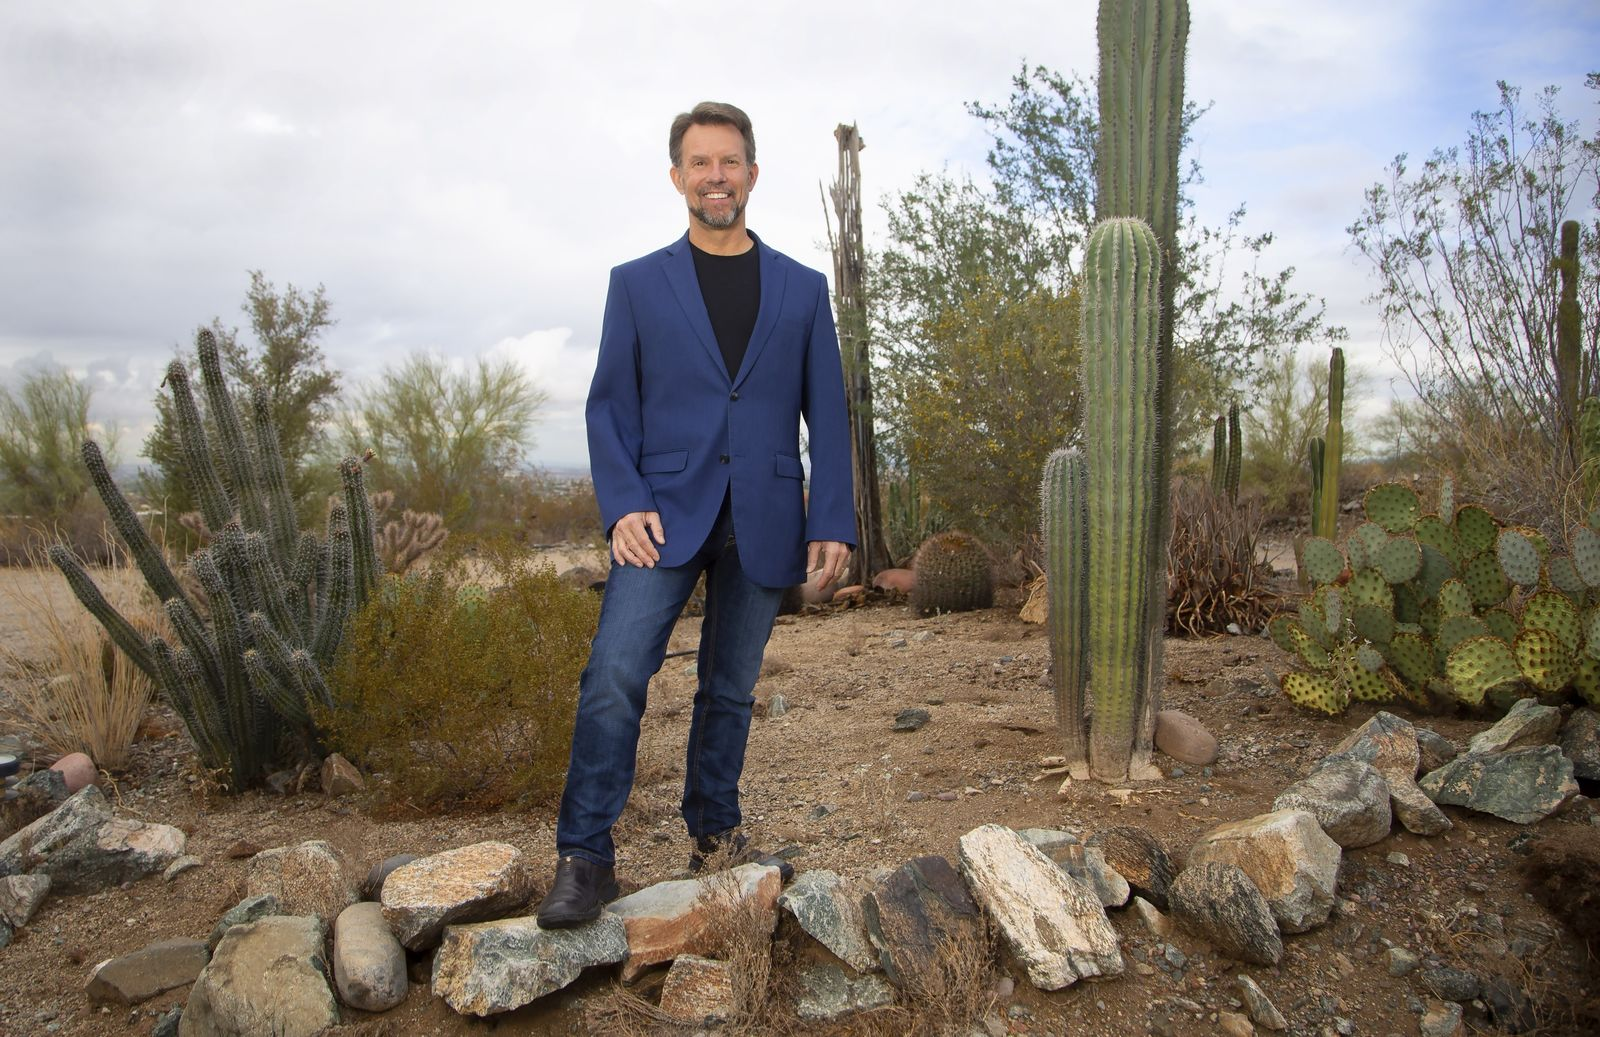 Geodesist Michael Dennis, NOAA's National Geodetic Survey, stands in the foothills of South Mountain Thursday, Nov. 21, 2019, in Laveen, Ariz. The small difference between the U.S. survey foot and the international foot caused trouble in planning for high speed rail in California, and created a mess for bridge work between Oregon, which uses the international foot, and Washington, which uses the U.S. one, he says. (AP Photo/Ross D. Franklin)